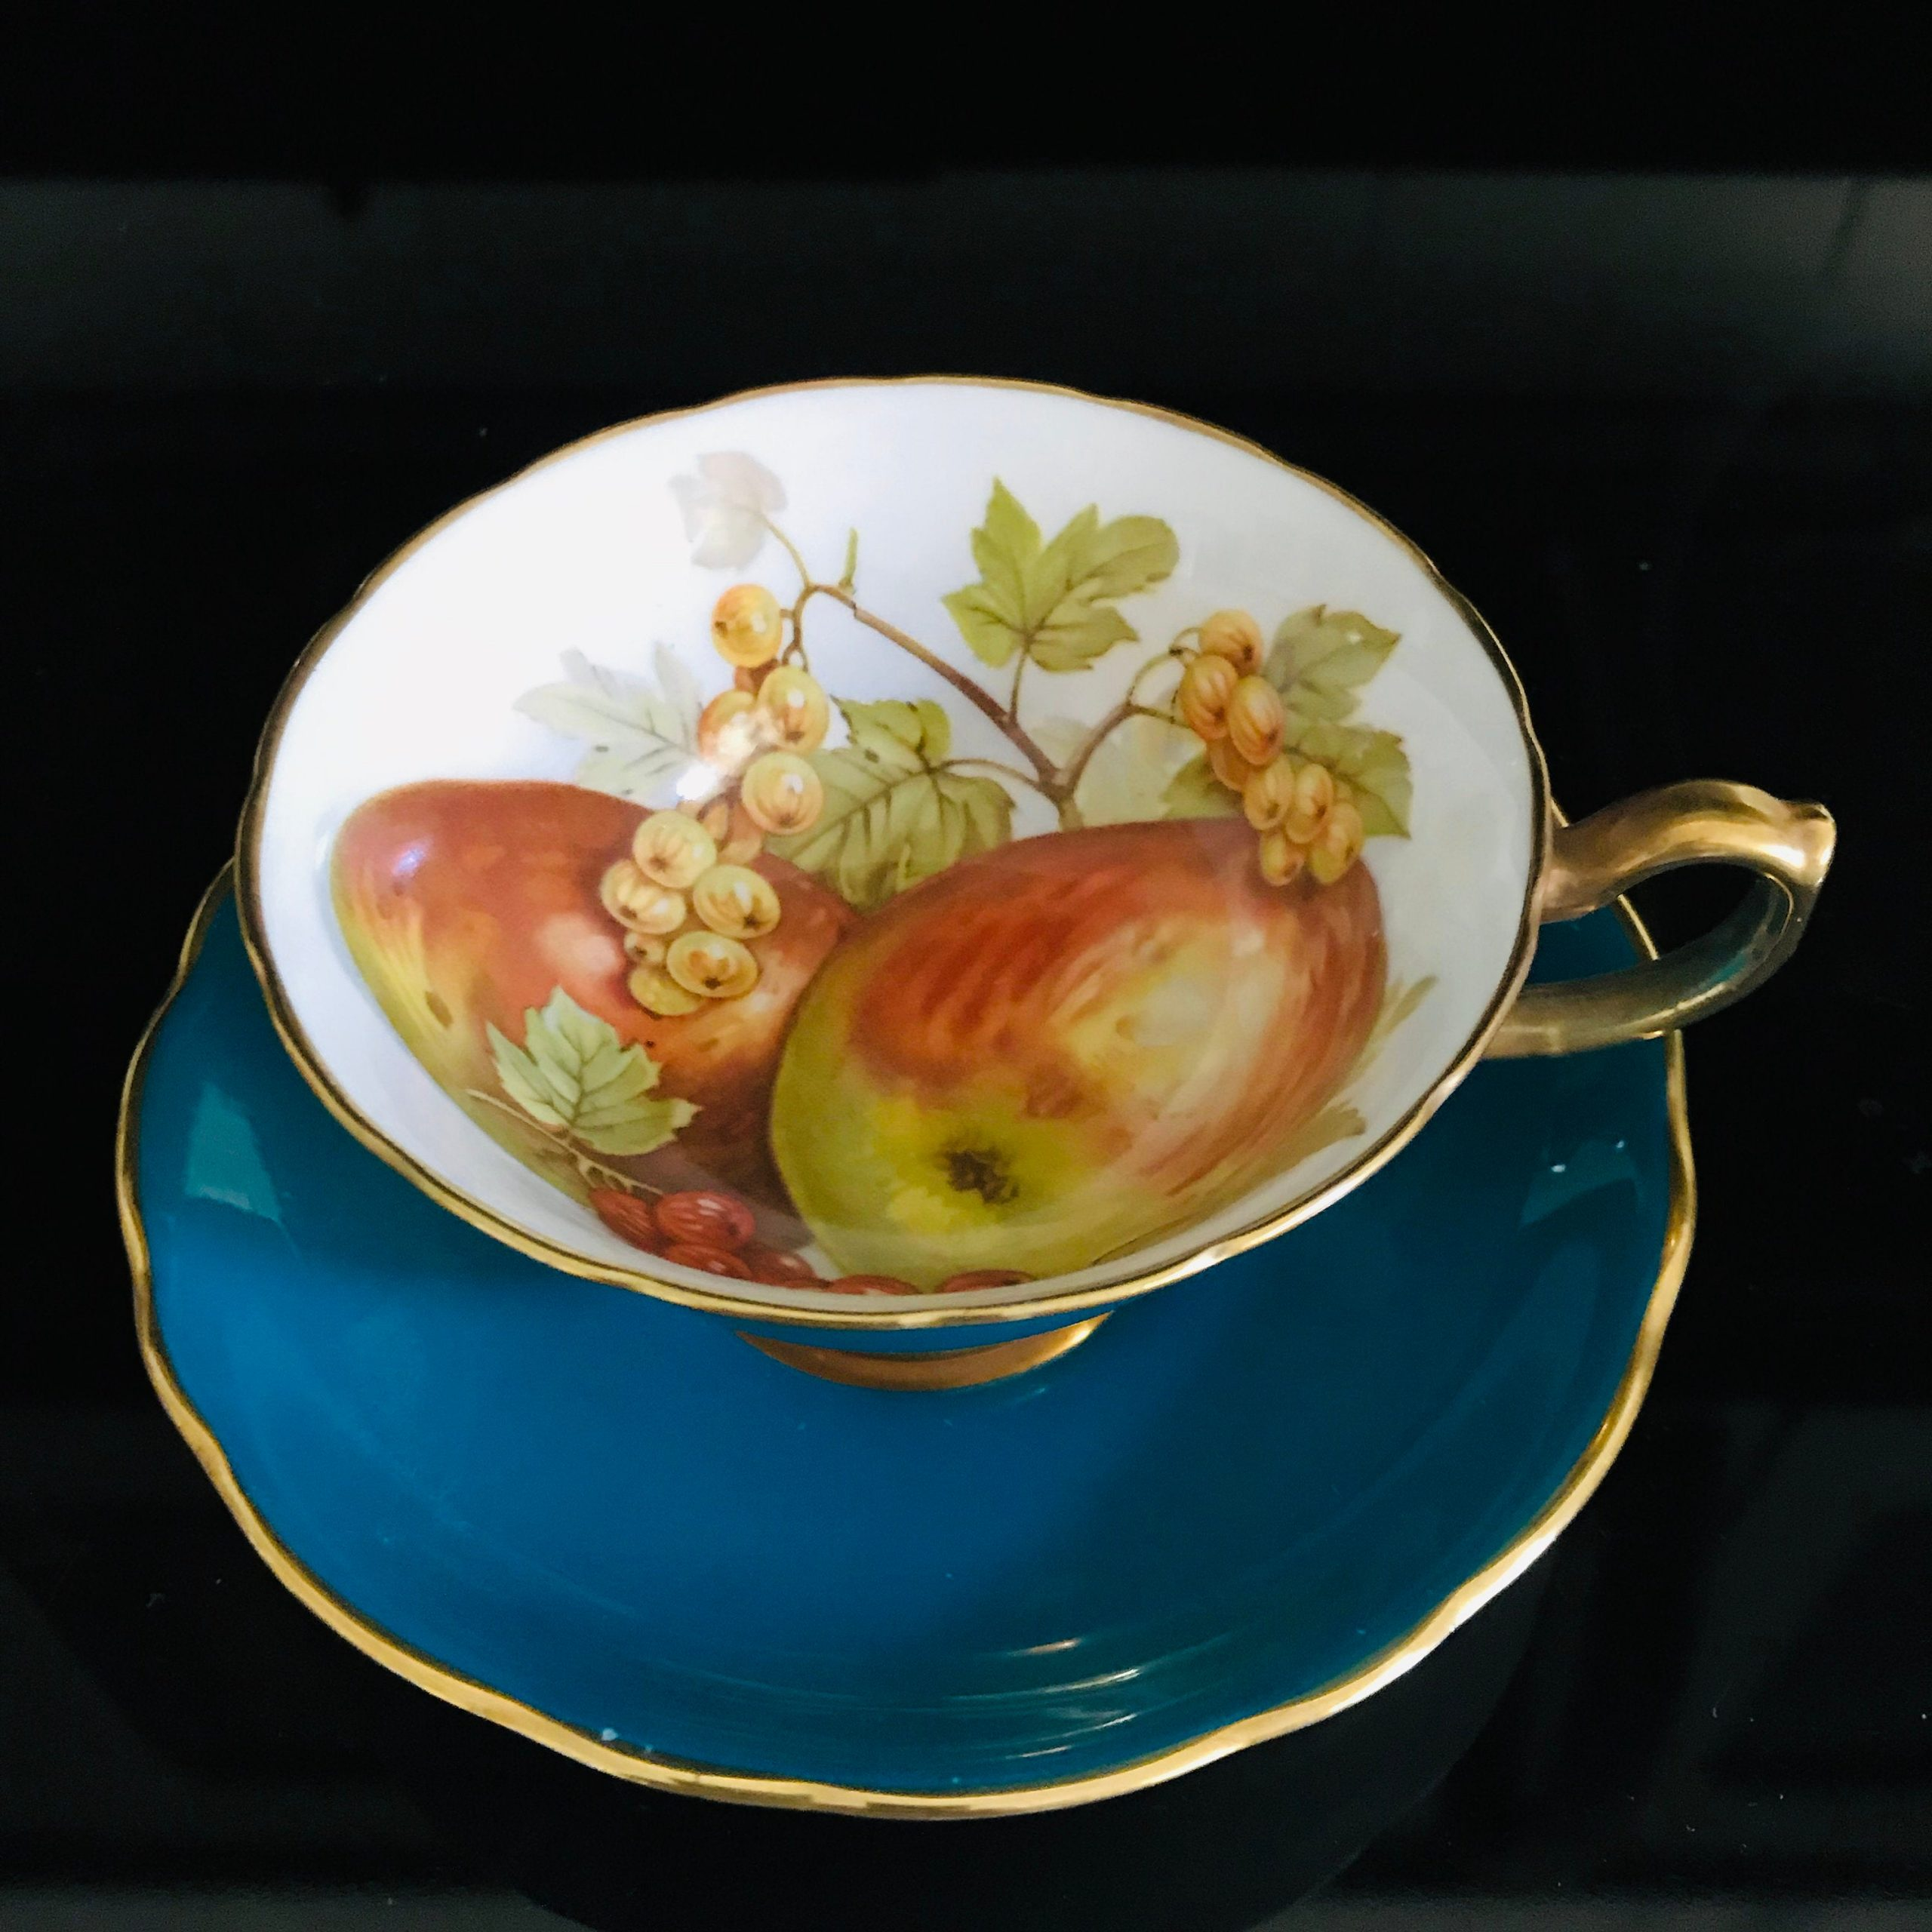 Hammersley Tea Cup And Saucer England Teal With Colorful Fruit Design Inside Cup Detailed Collectible Display Farmhouse Carol S True Vintage And Antiques